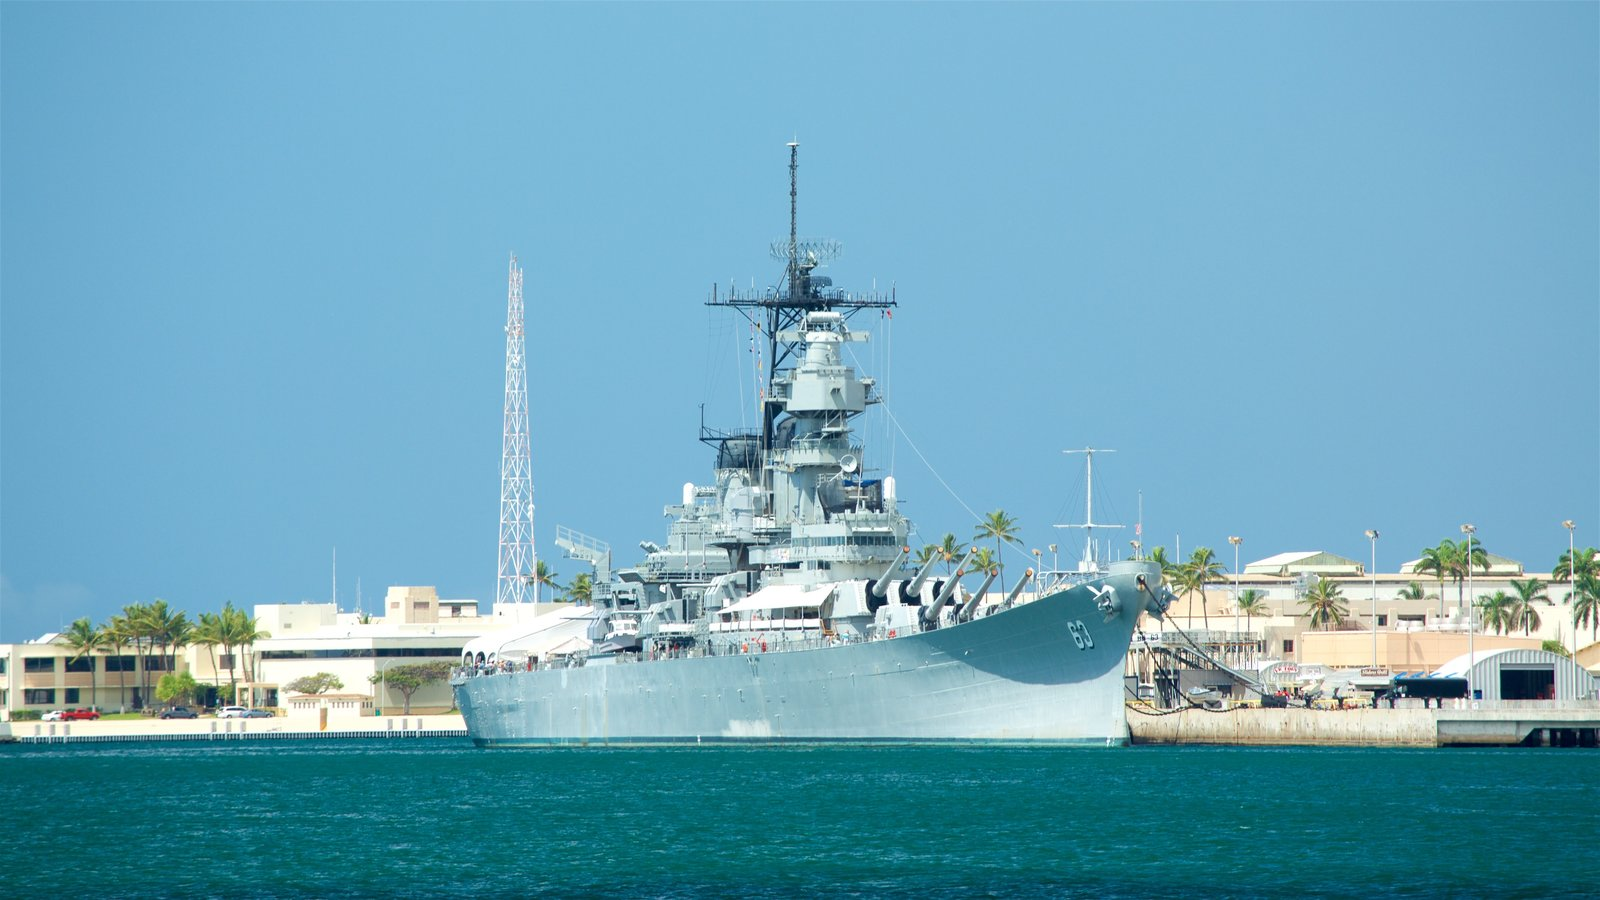 Pearl Harbor which includes a bay or harbor and military items